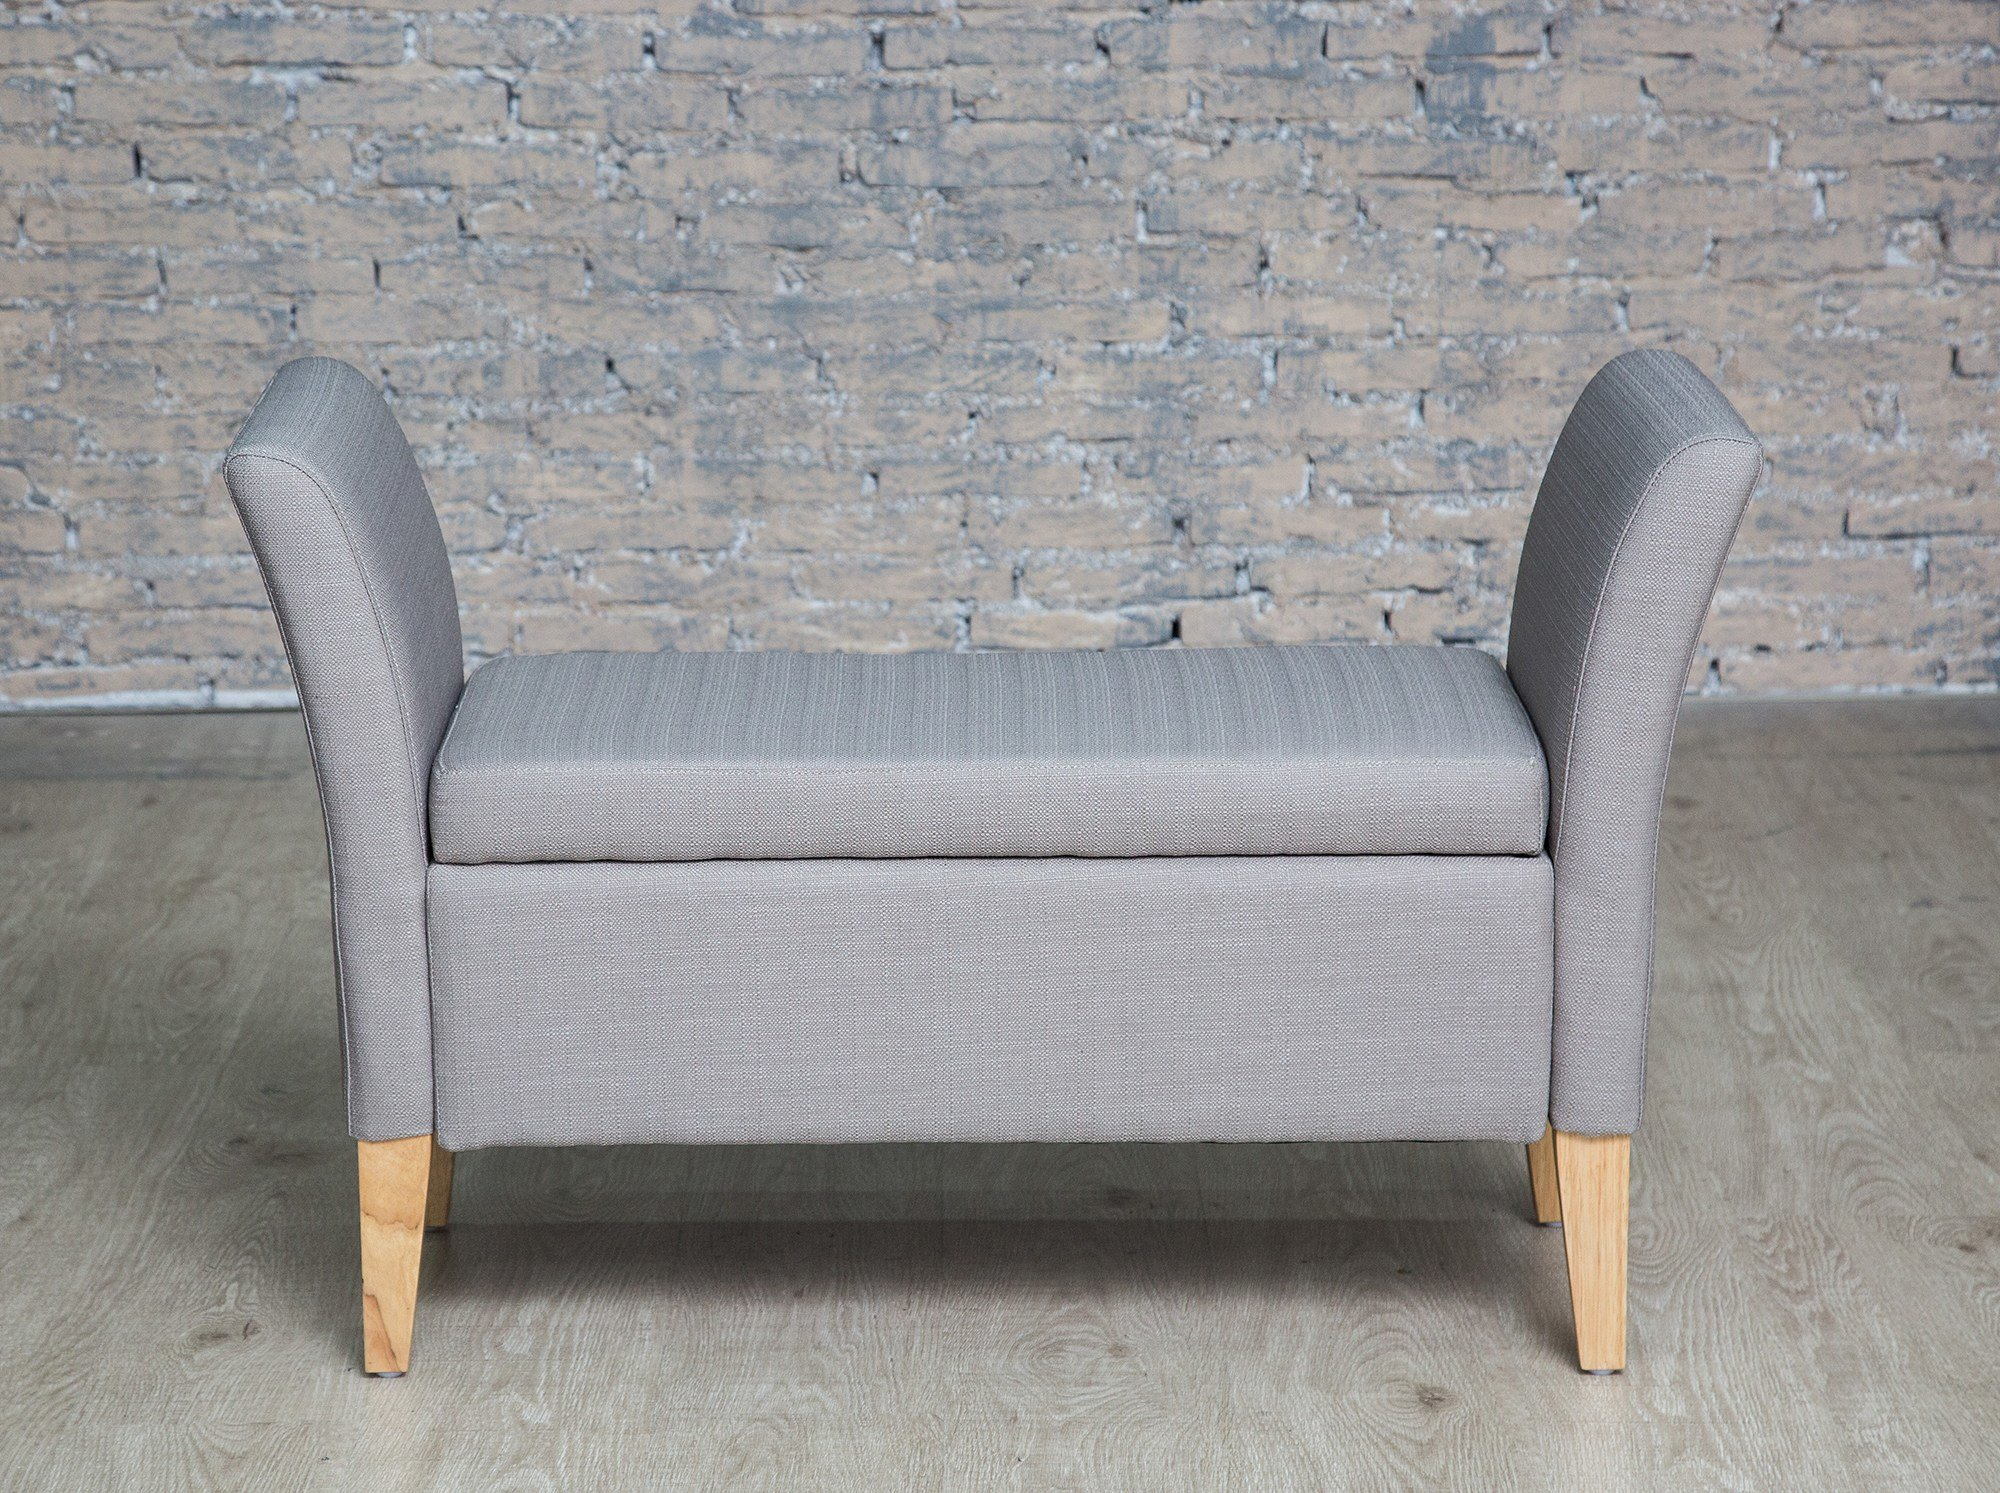 Best Light Grey Upholstered Storage Bench With Arms Storage With Pictures